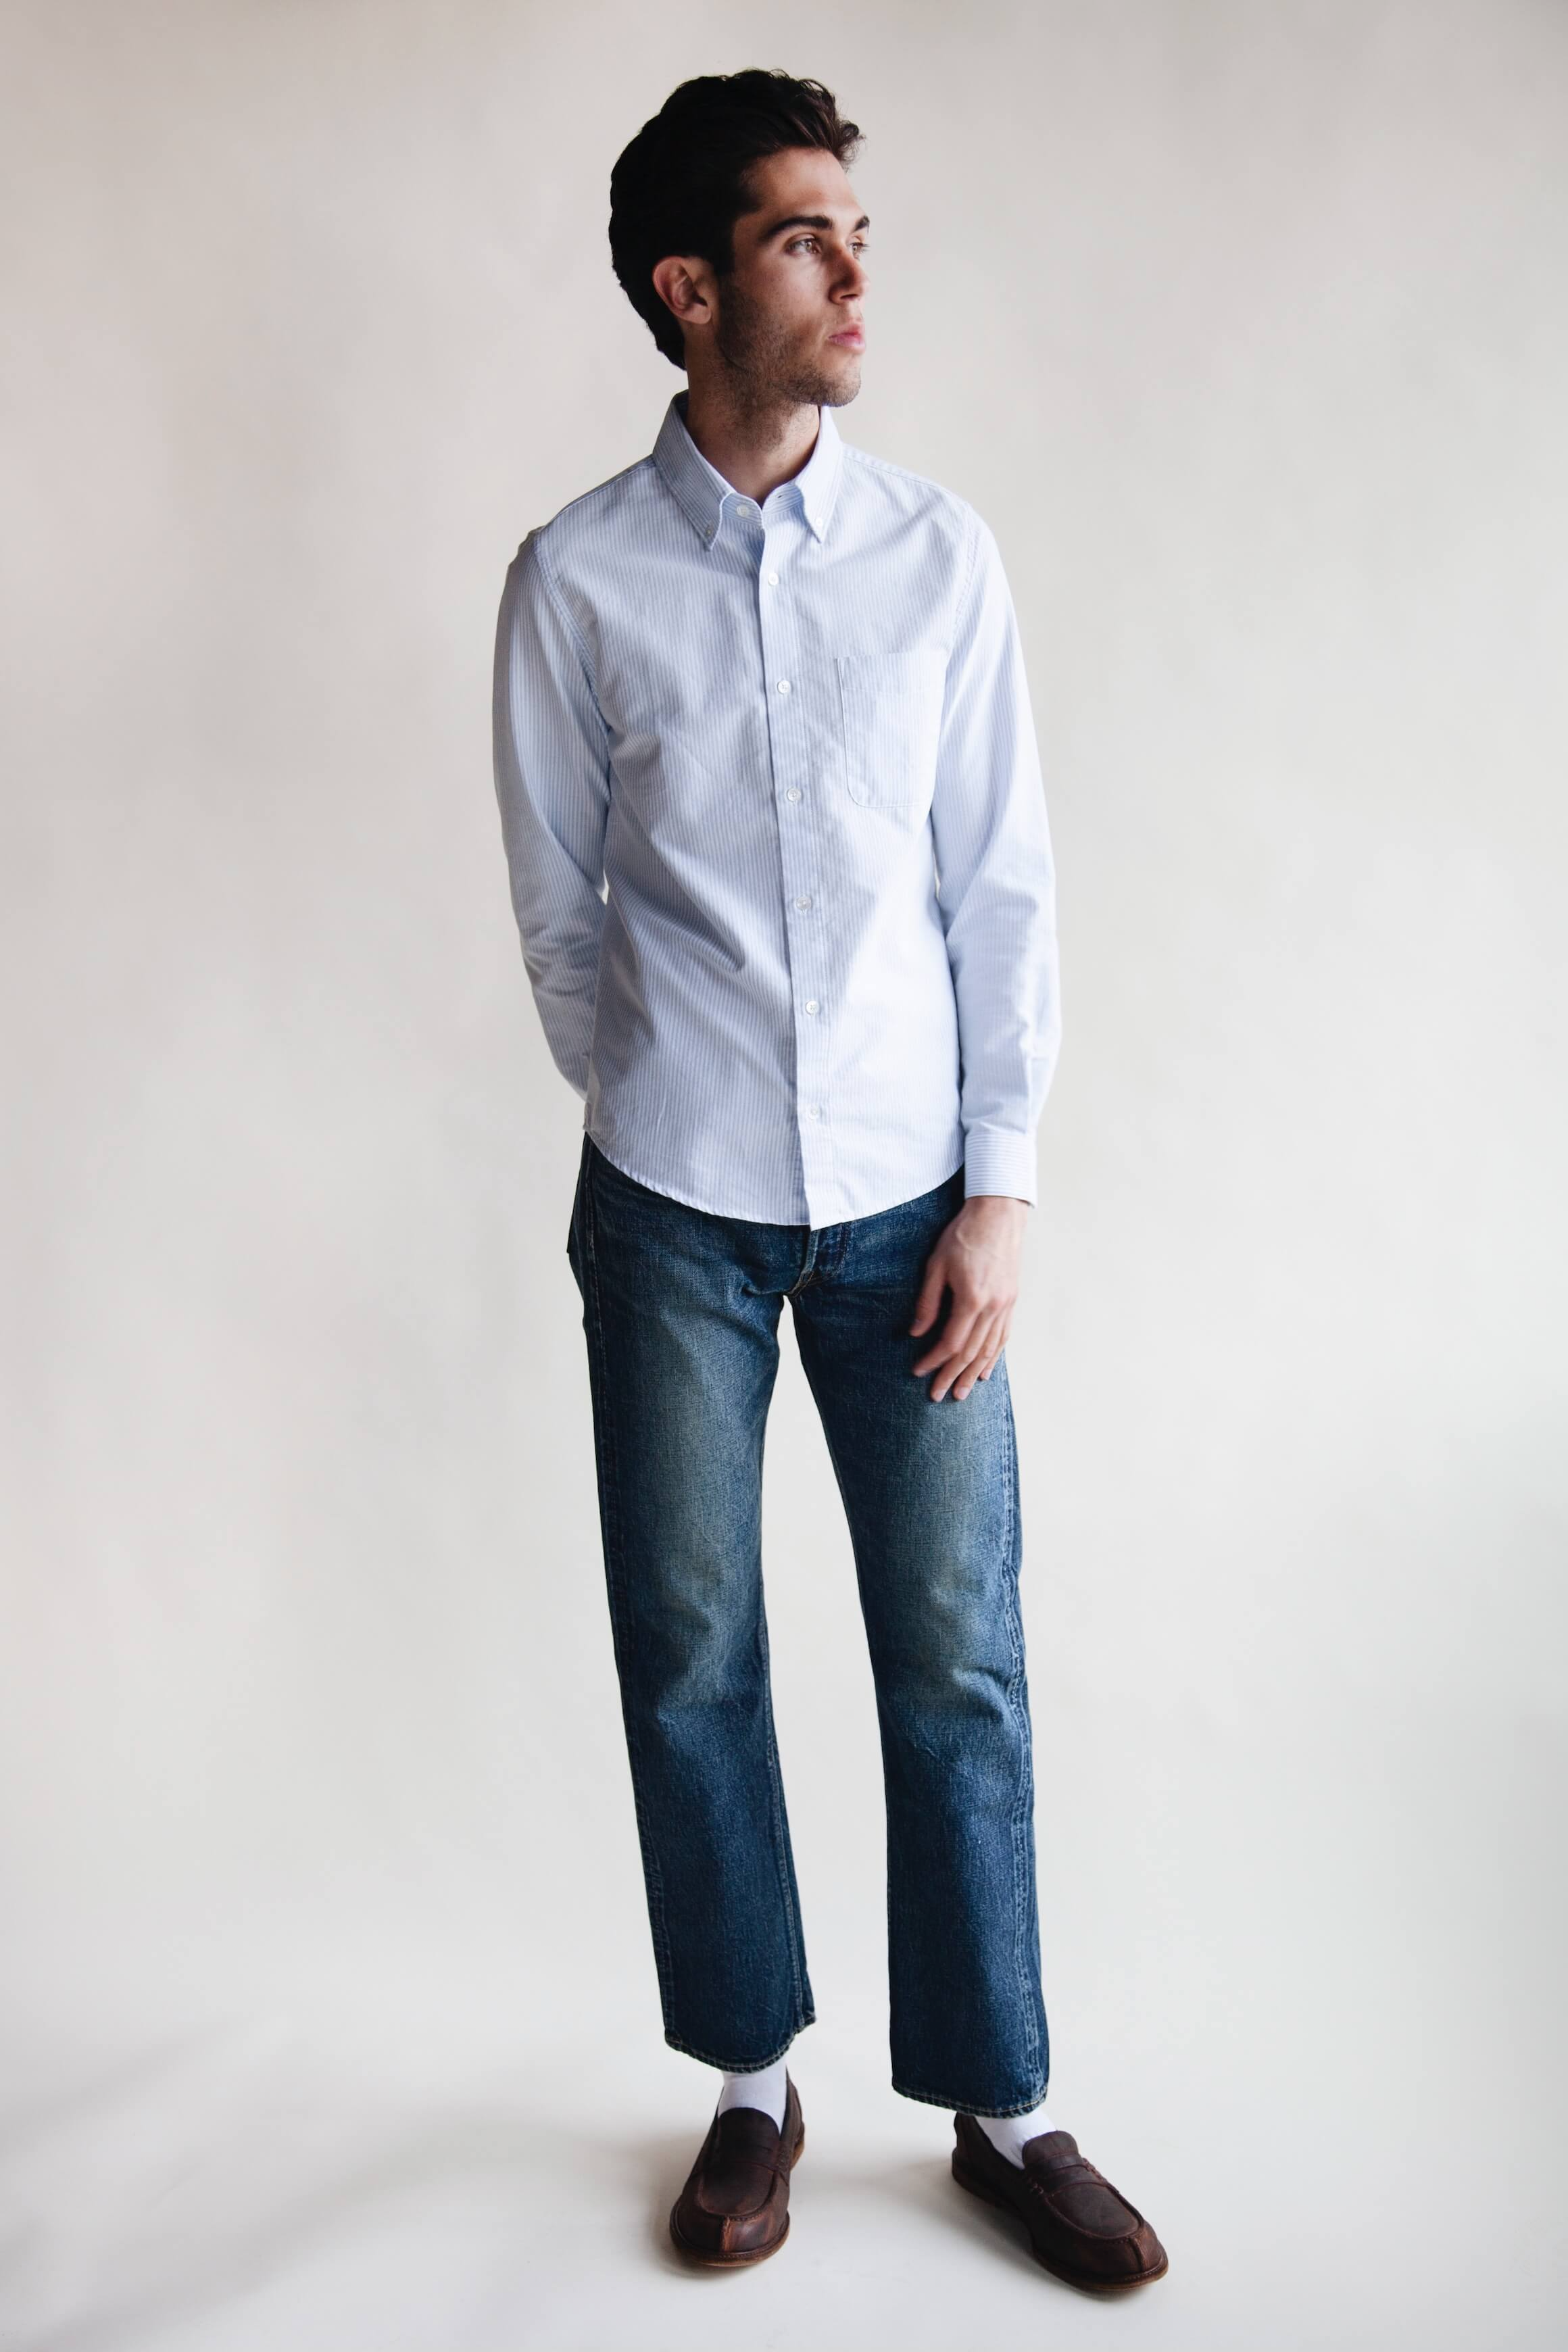 harmony paris celestin shirt, full count 1101 dartford denim and hender scheme slouchy shoes on body